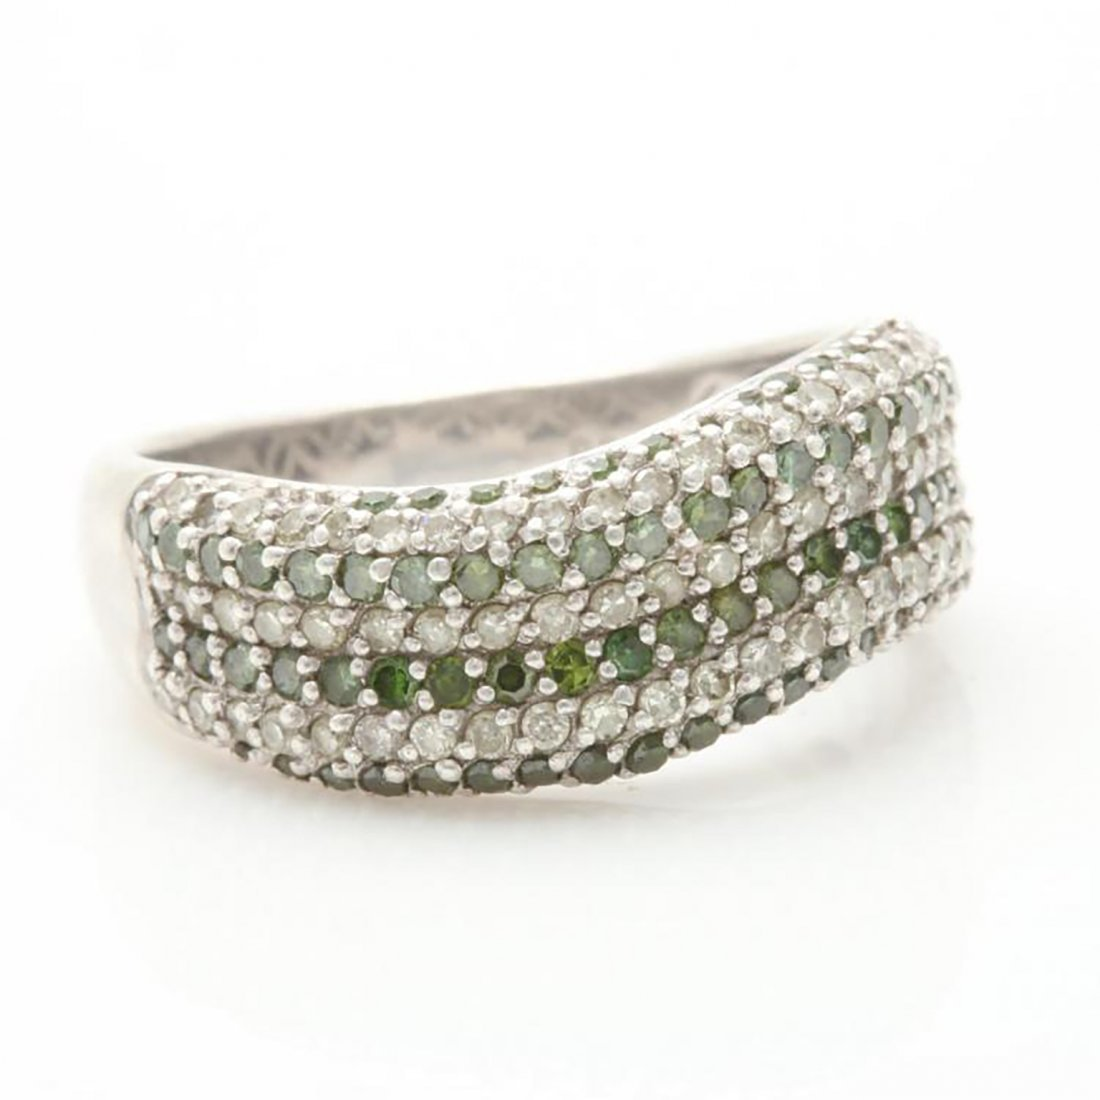 Green Diamond Ring with Accents in Sterling Silver - 3